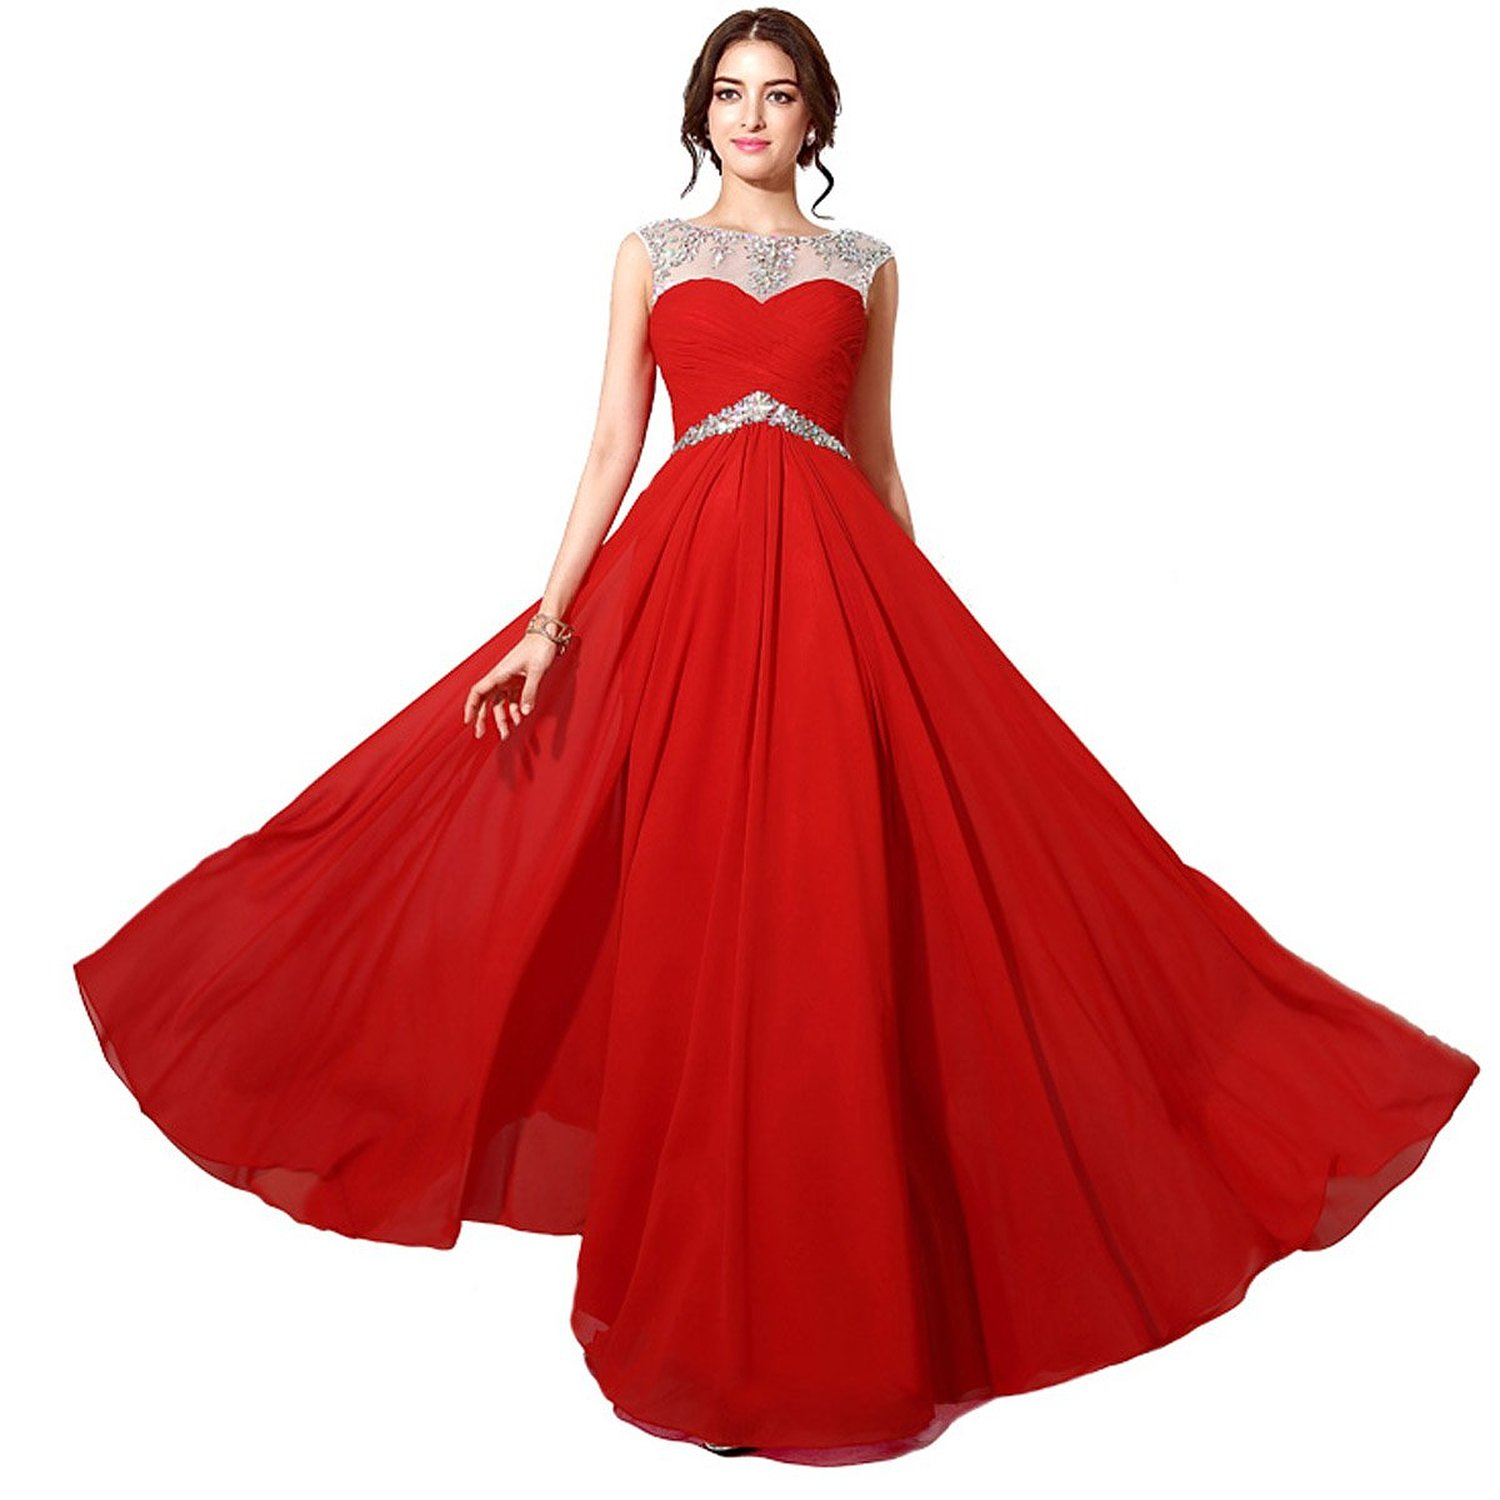 Favebridal 2015 Women 39 S Red Tulle Long Evening Prom Gown